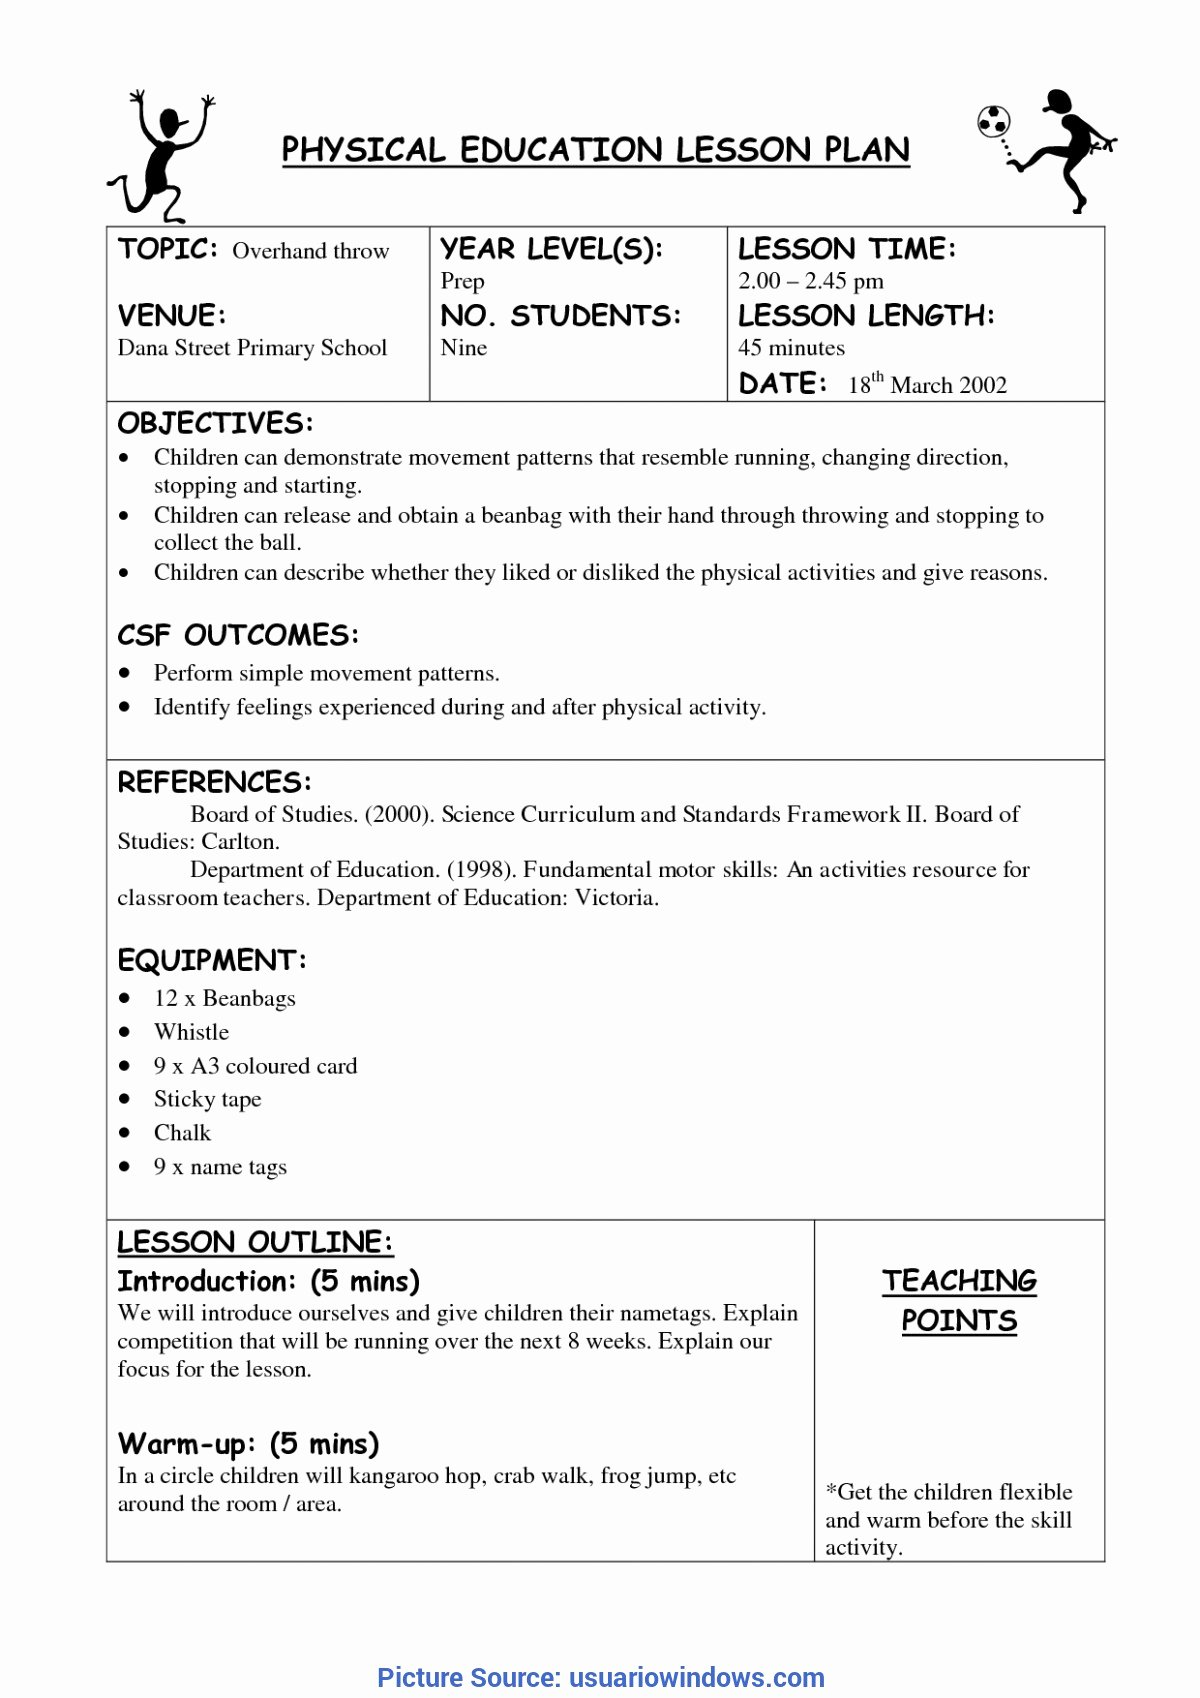 Phys Ed Lesson Plan Template Elegant Regular Pe Lesson Plan Template Physical Education Lesson Plan Template